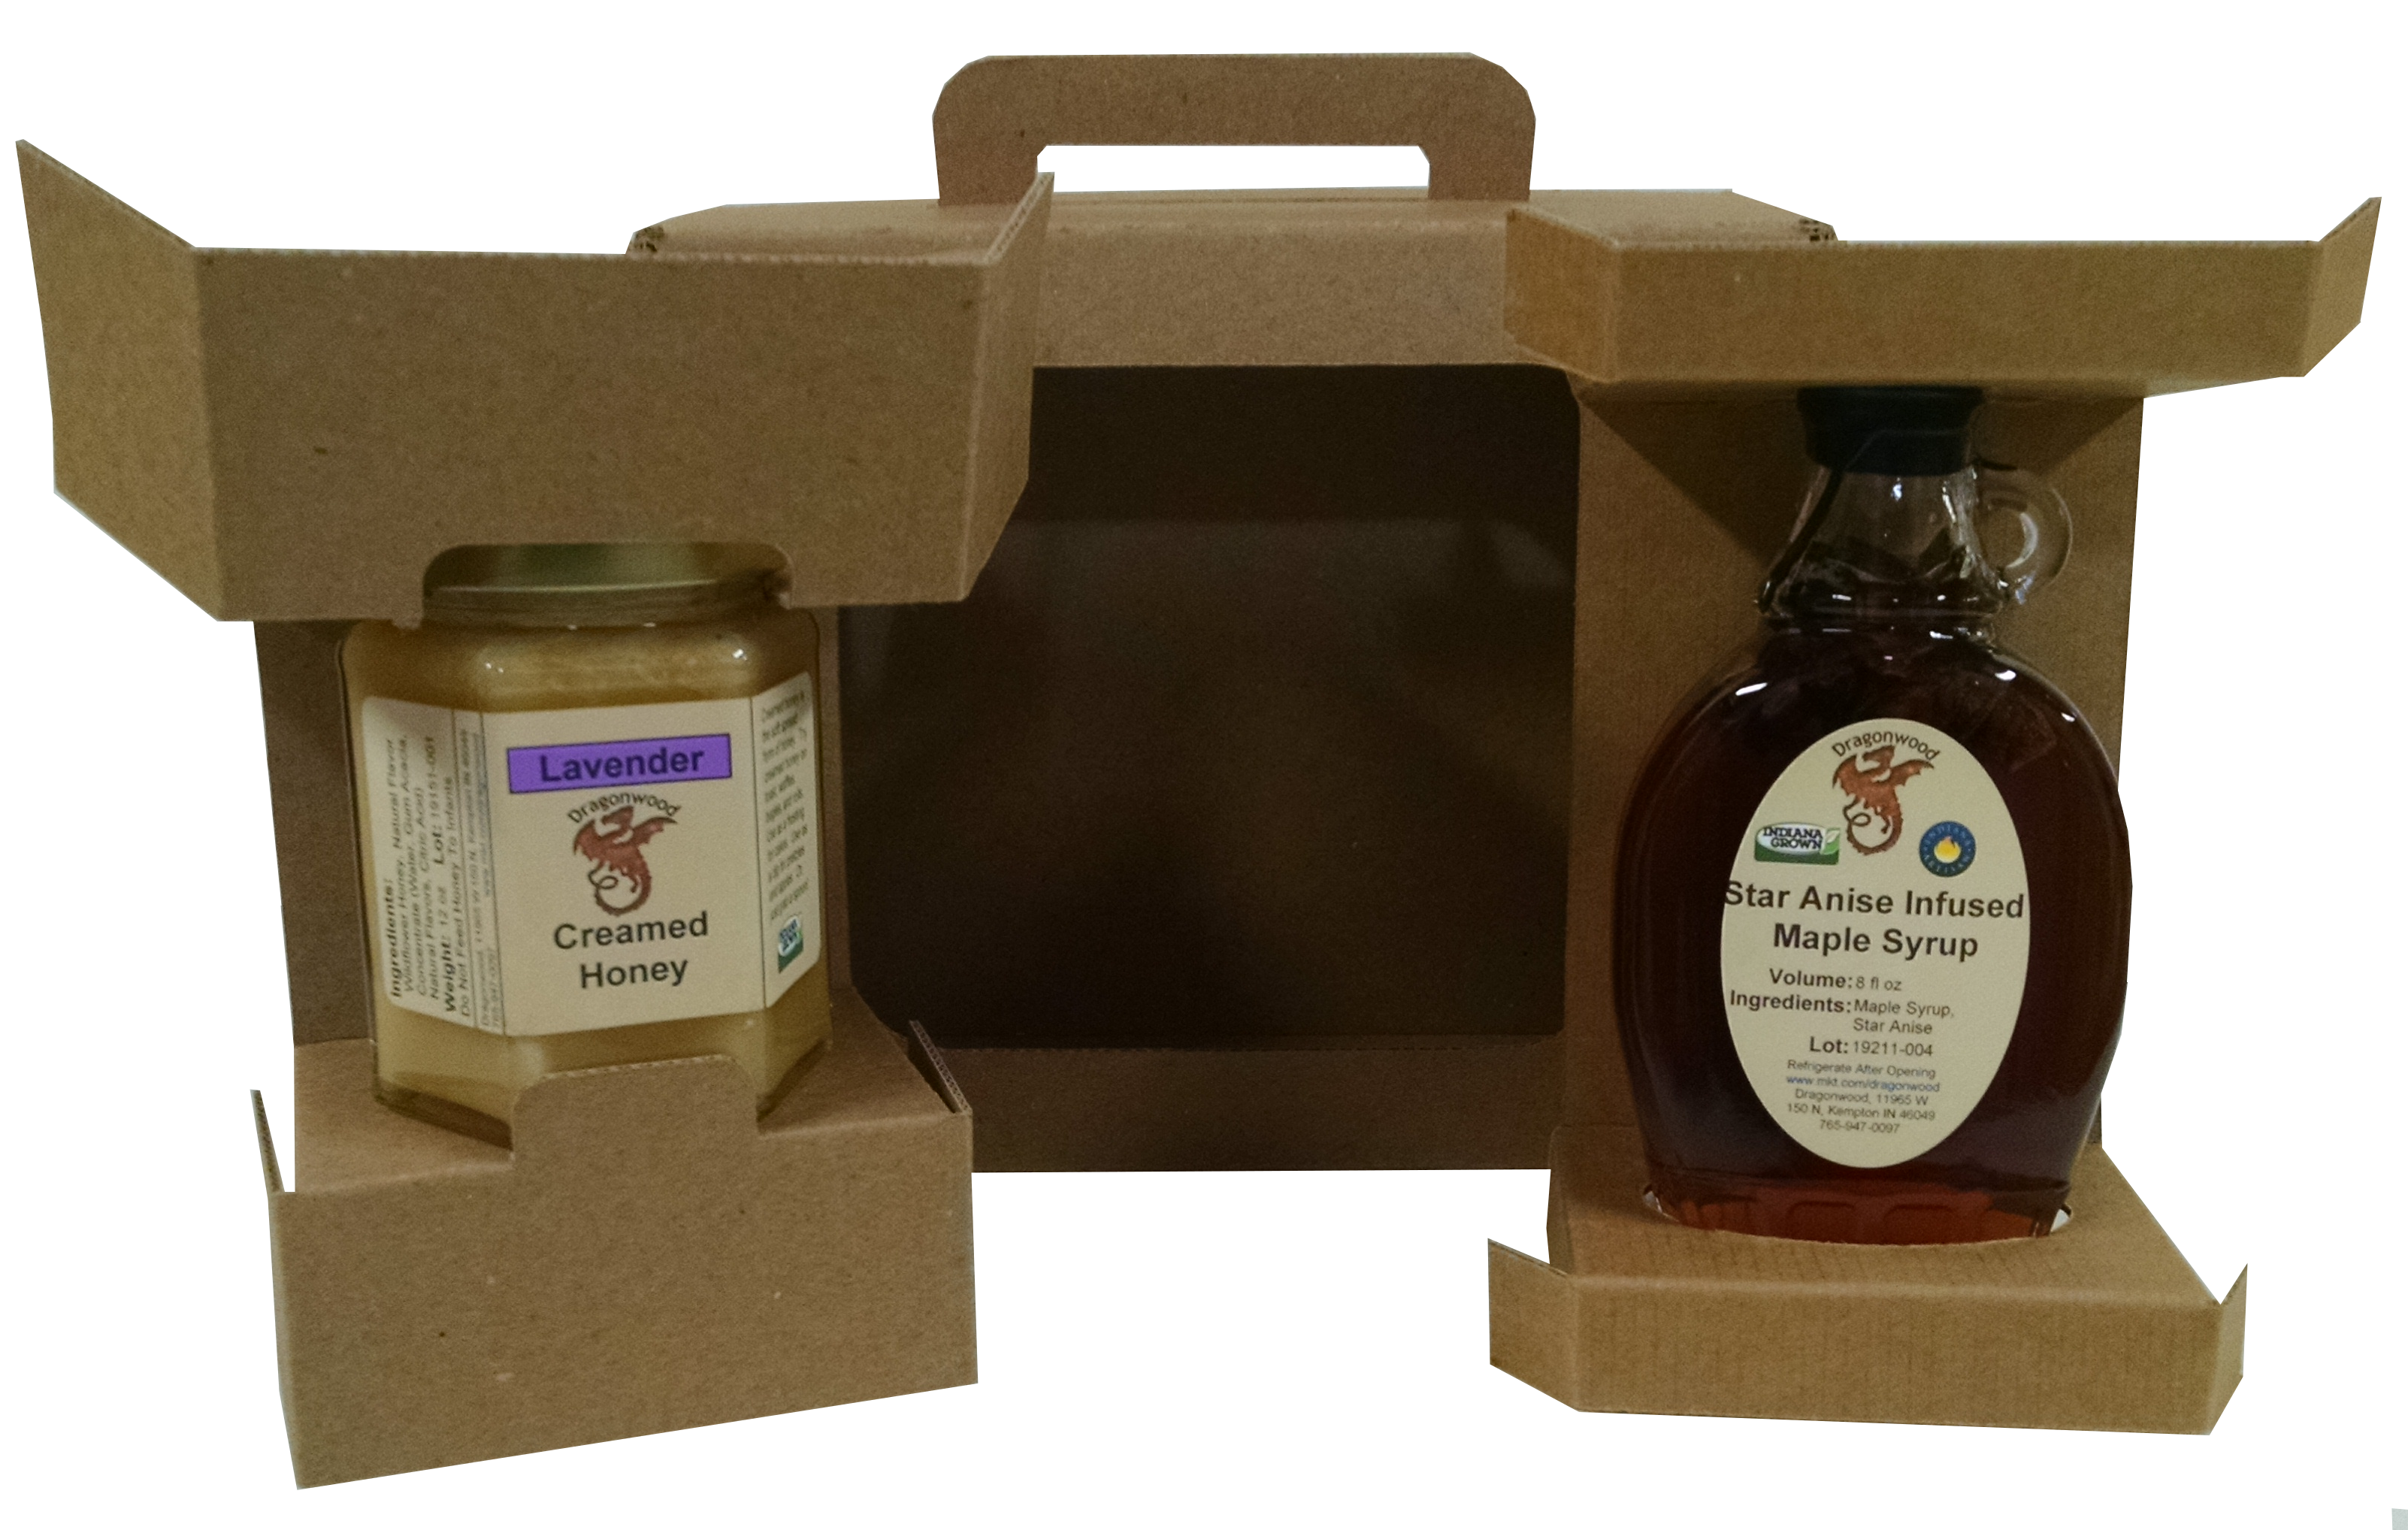 Dragonwood's Custom Gift Box contains two products of your choice